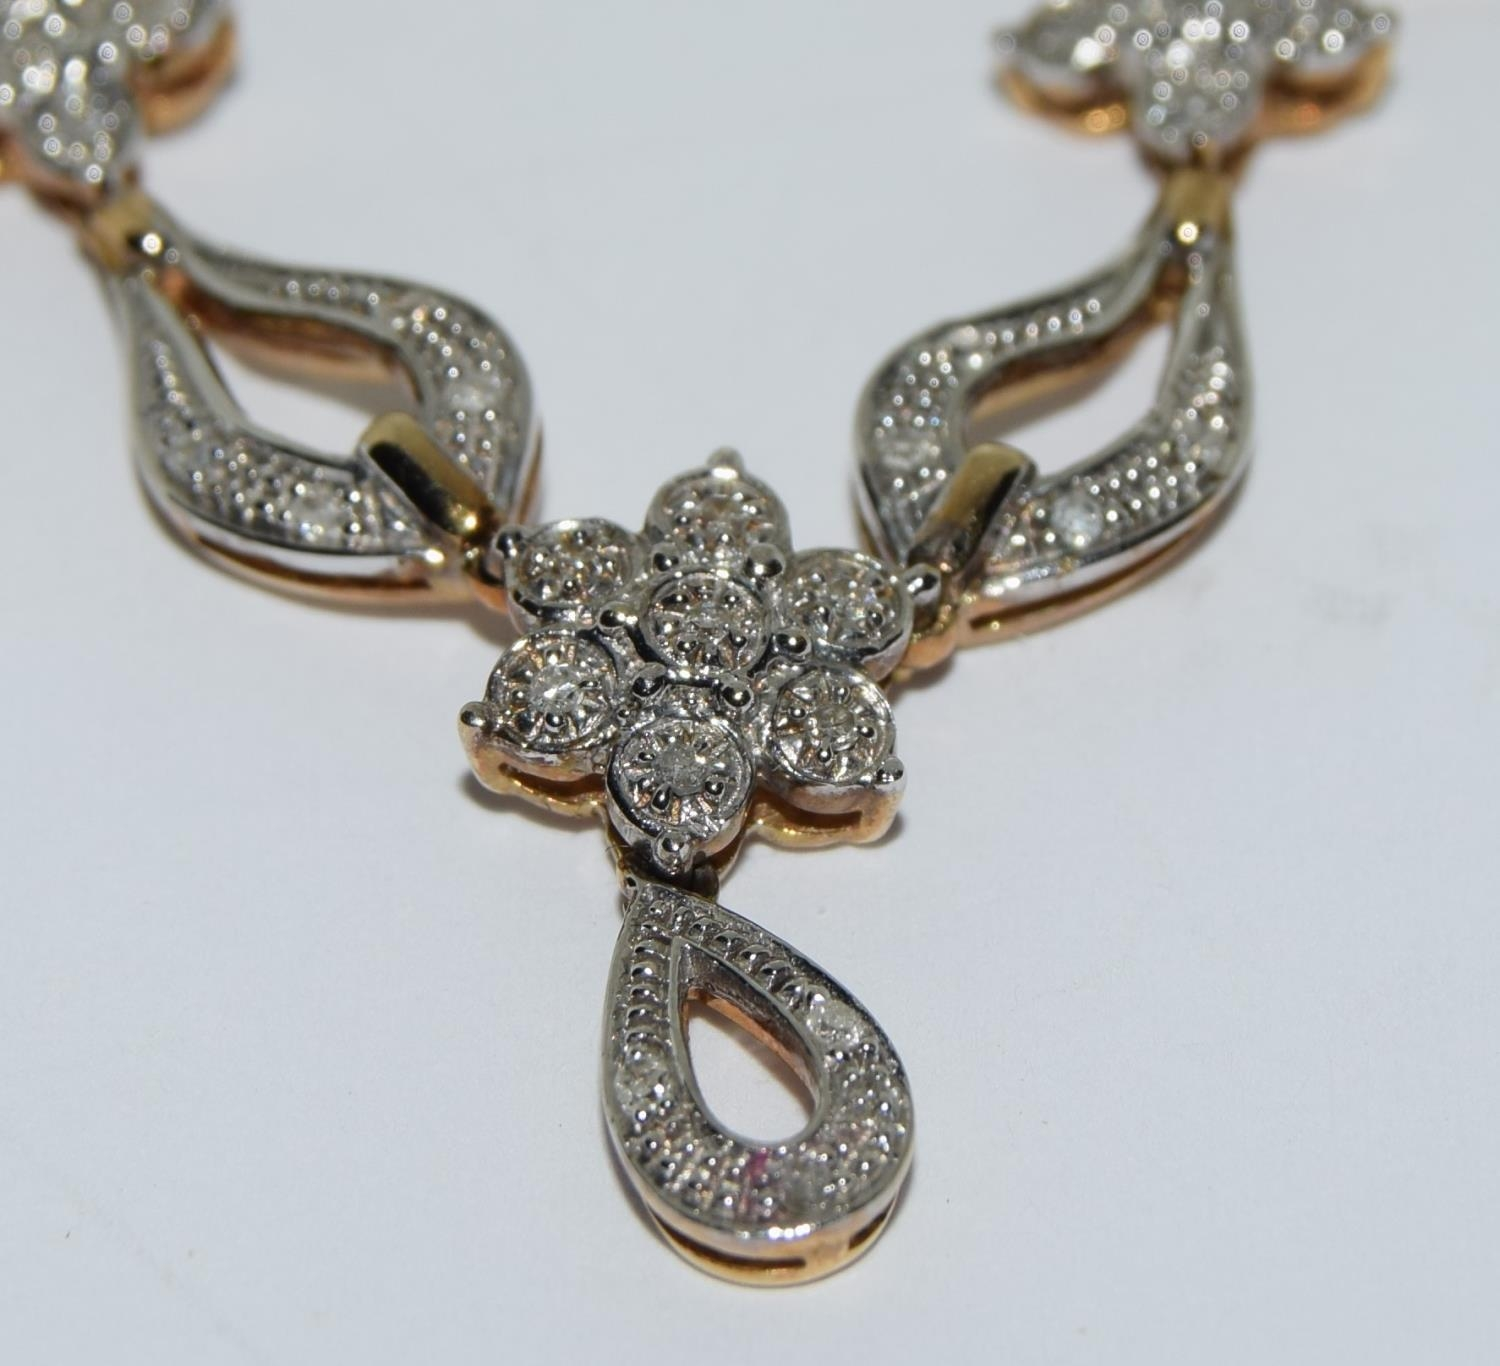 Diamond 9ct gold necklace, boxed - Image 5 of 5